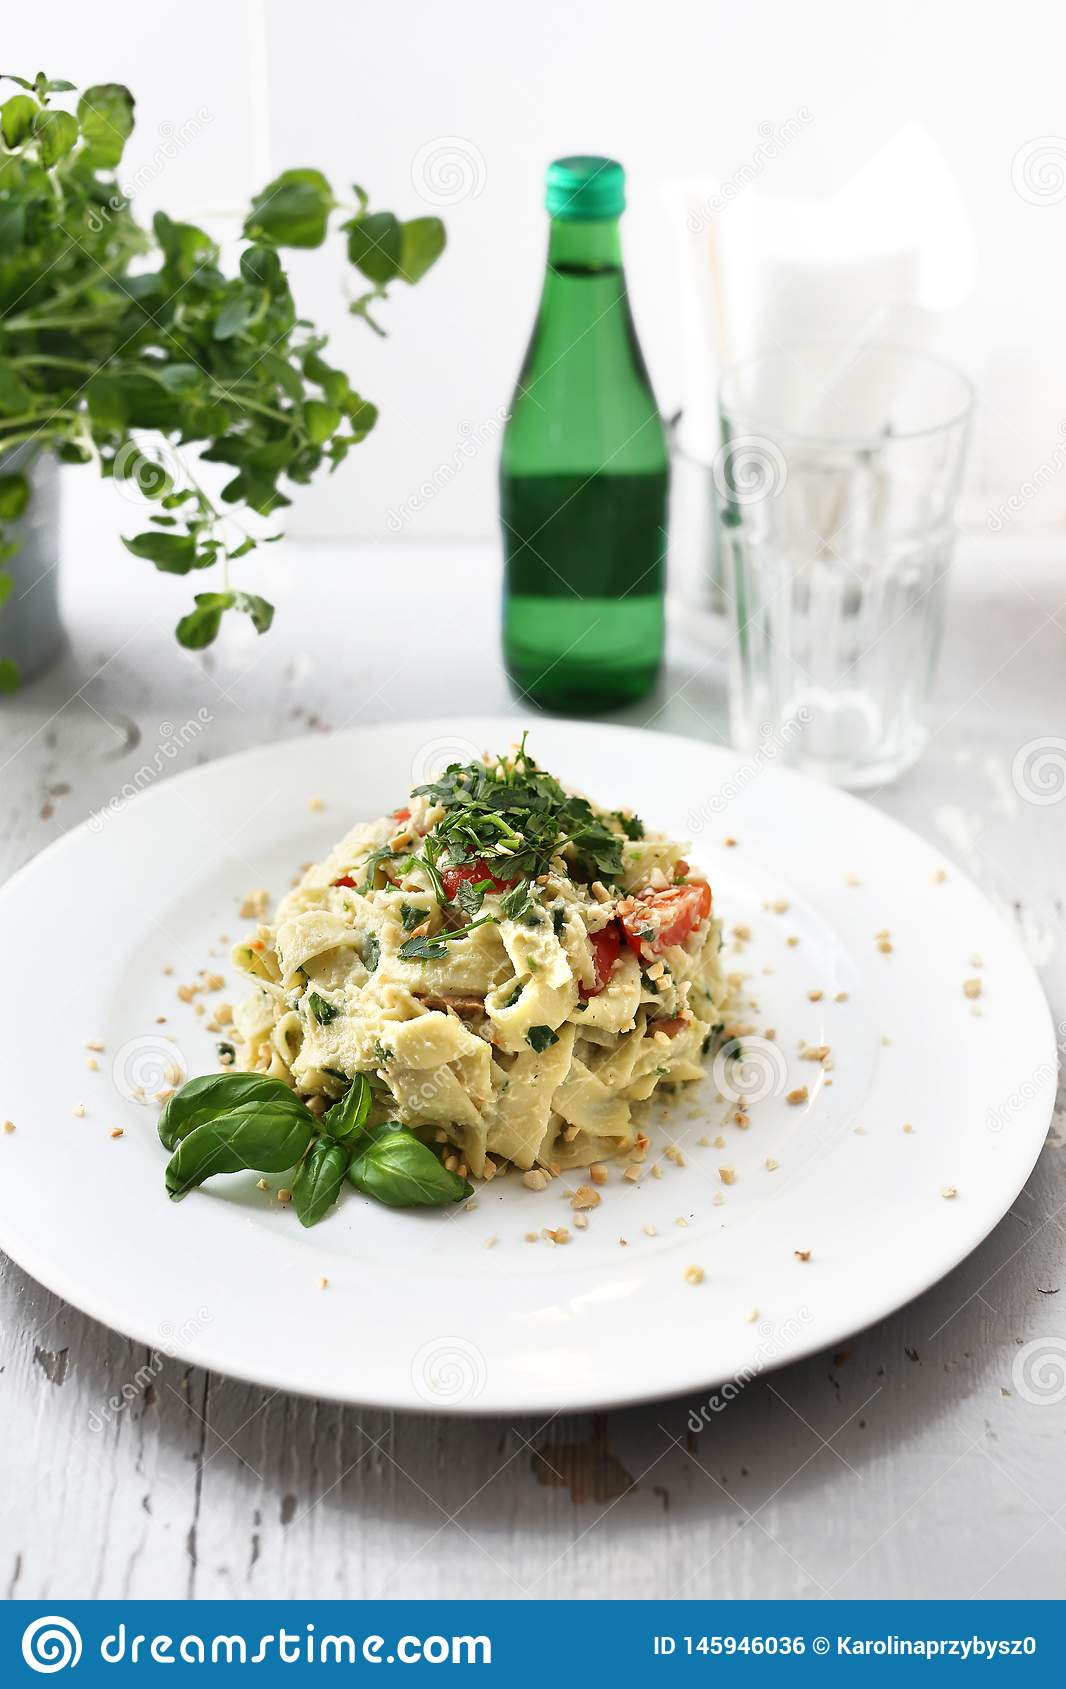 Spaghetti  pasta with cauliflower and spinach. Dish on a white plate